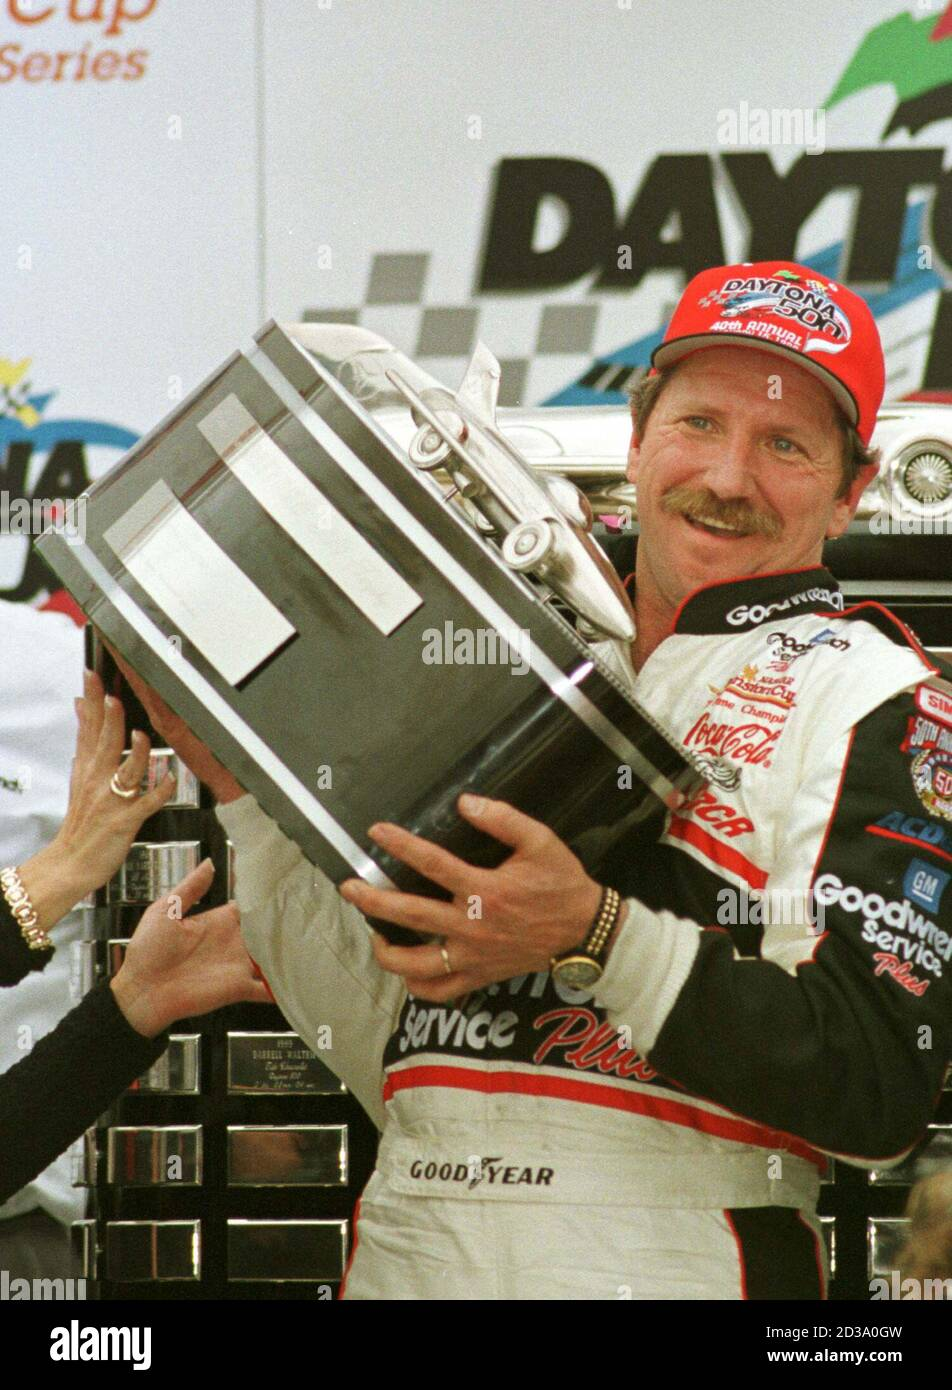 Nascar Motor Racing Legend Dale Earnhardt Died Of Injuries Resulting From A Last Lap Accident At Sunday S Daytona 500 February 18 2001 The 49 Year Old Earnhardt A Seven Time Nascar Winston Cup Champion Is Shown